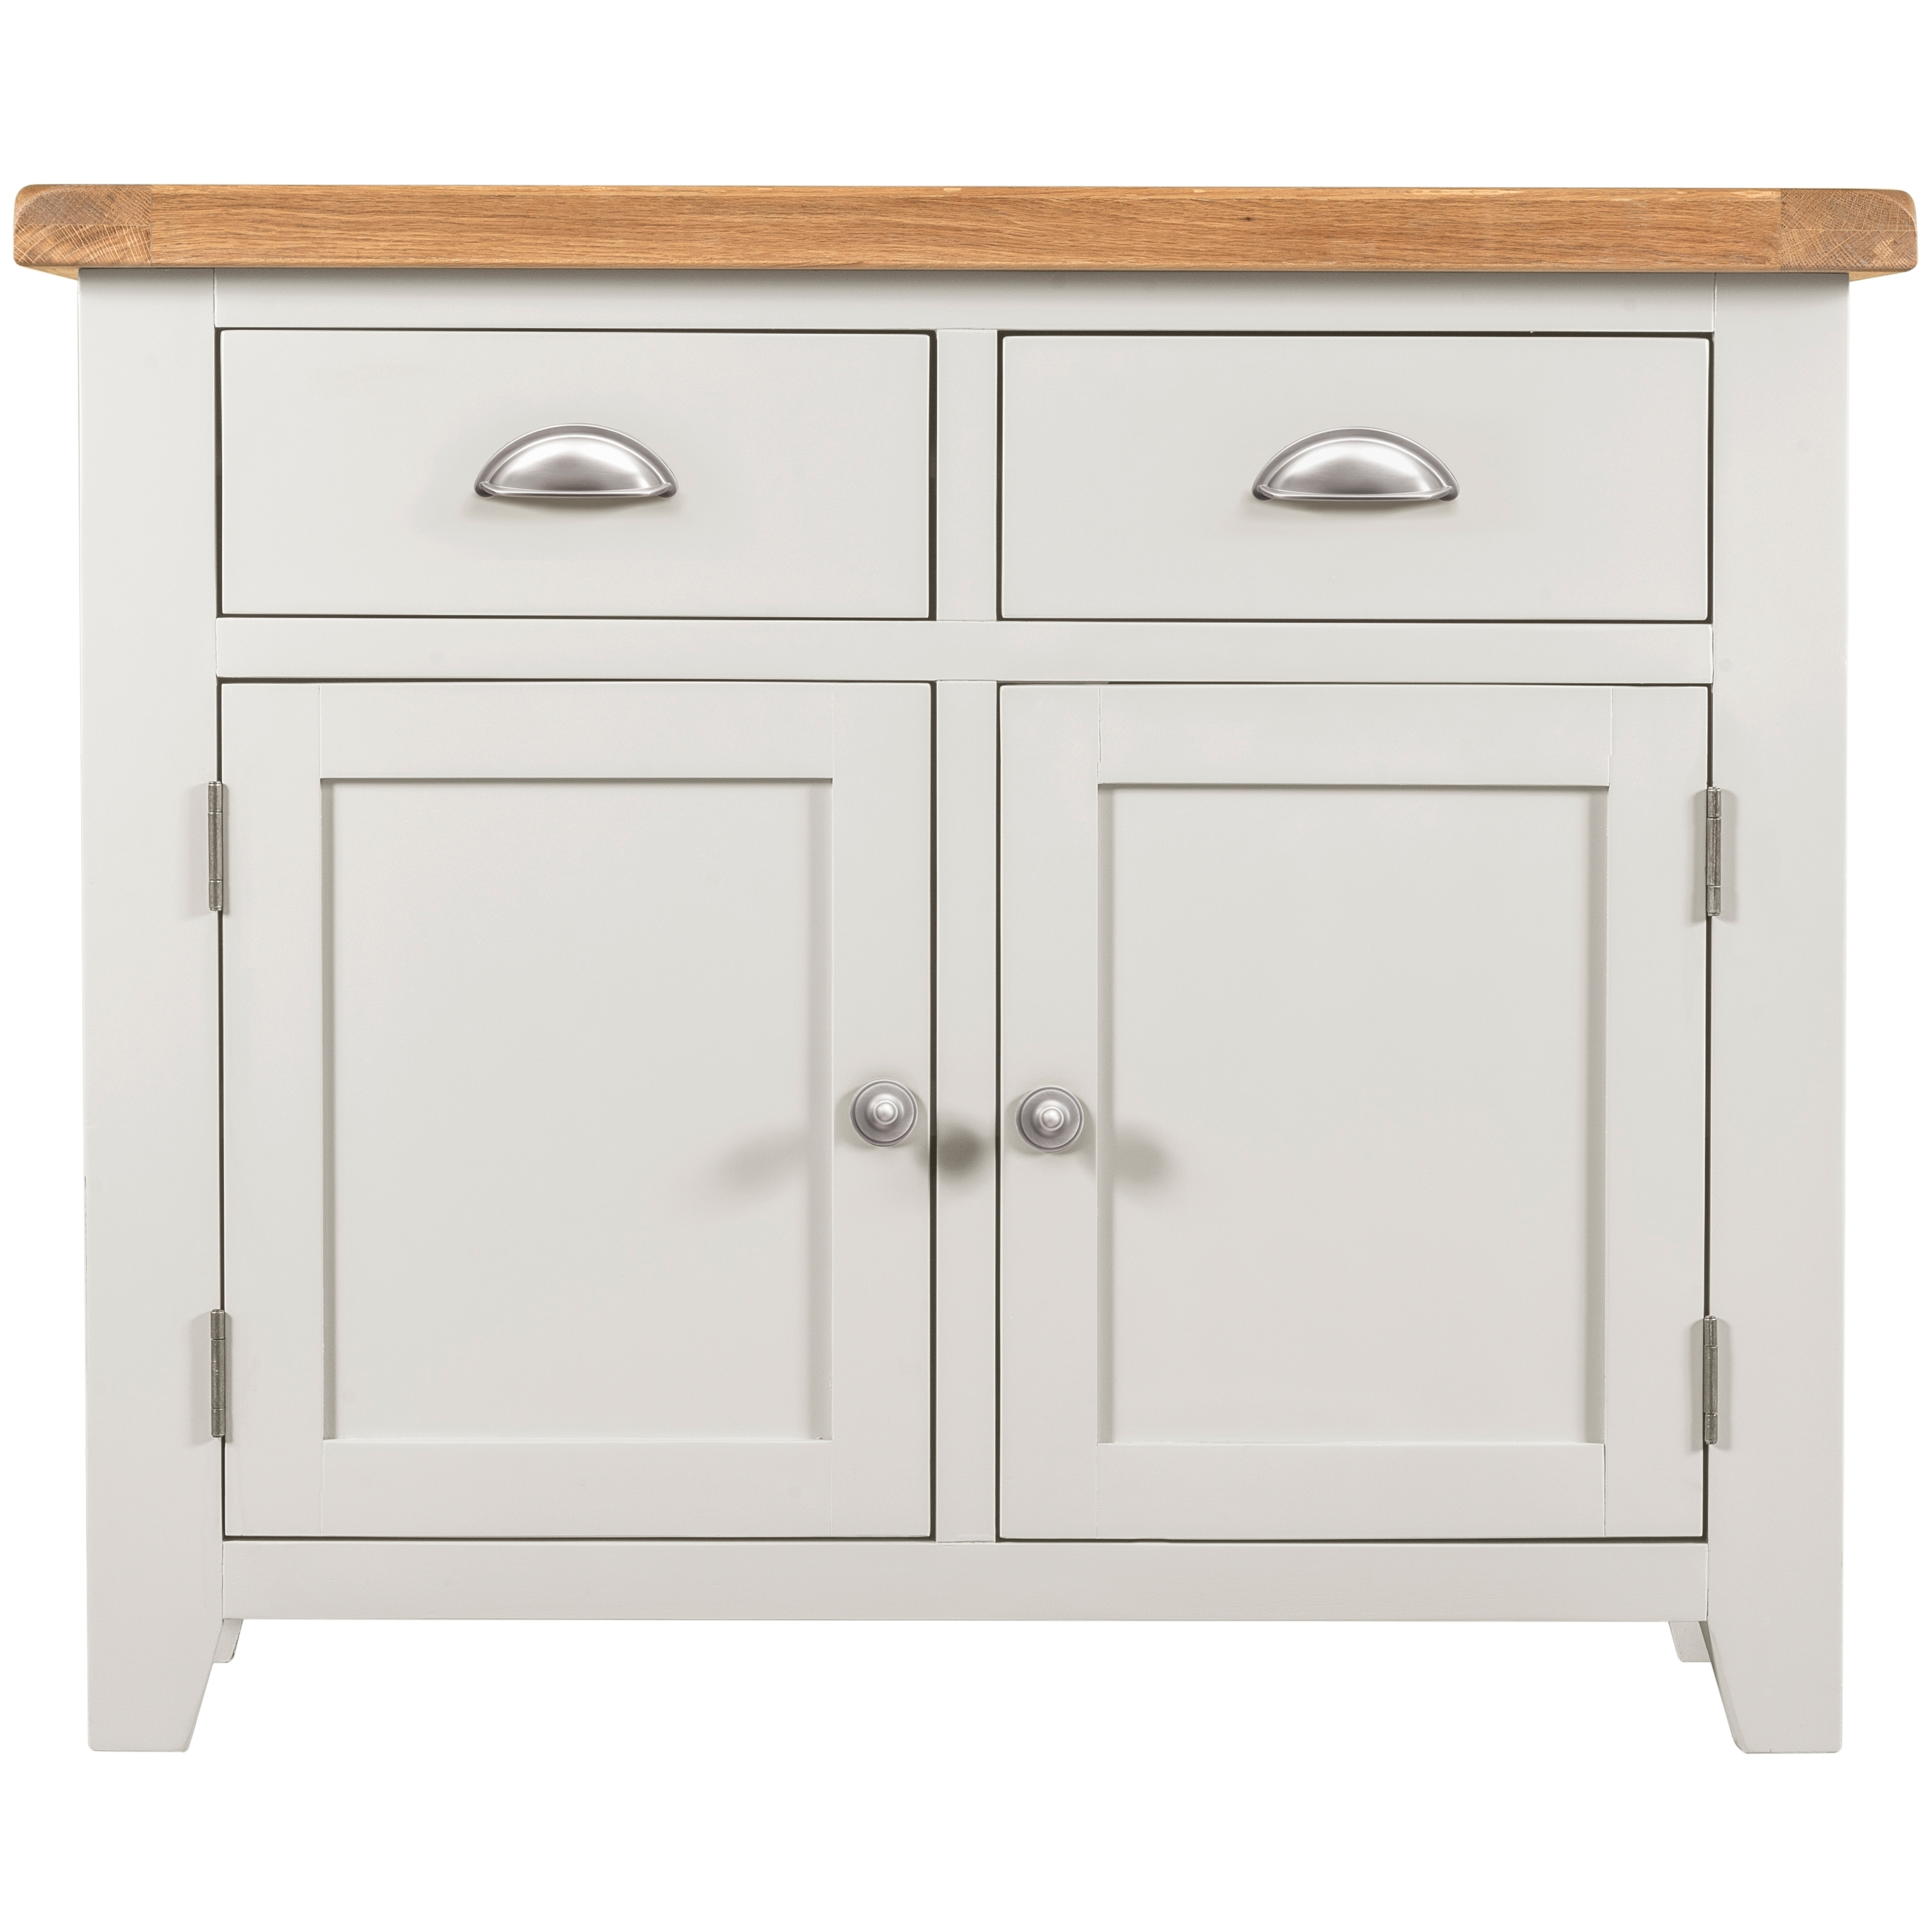 Willow White 2 Door 2 Drawer Sideboard | The Haven Home Interiors regarding 2-Drawer Sideboards (Image 30 of 30)